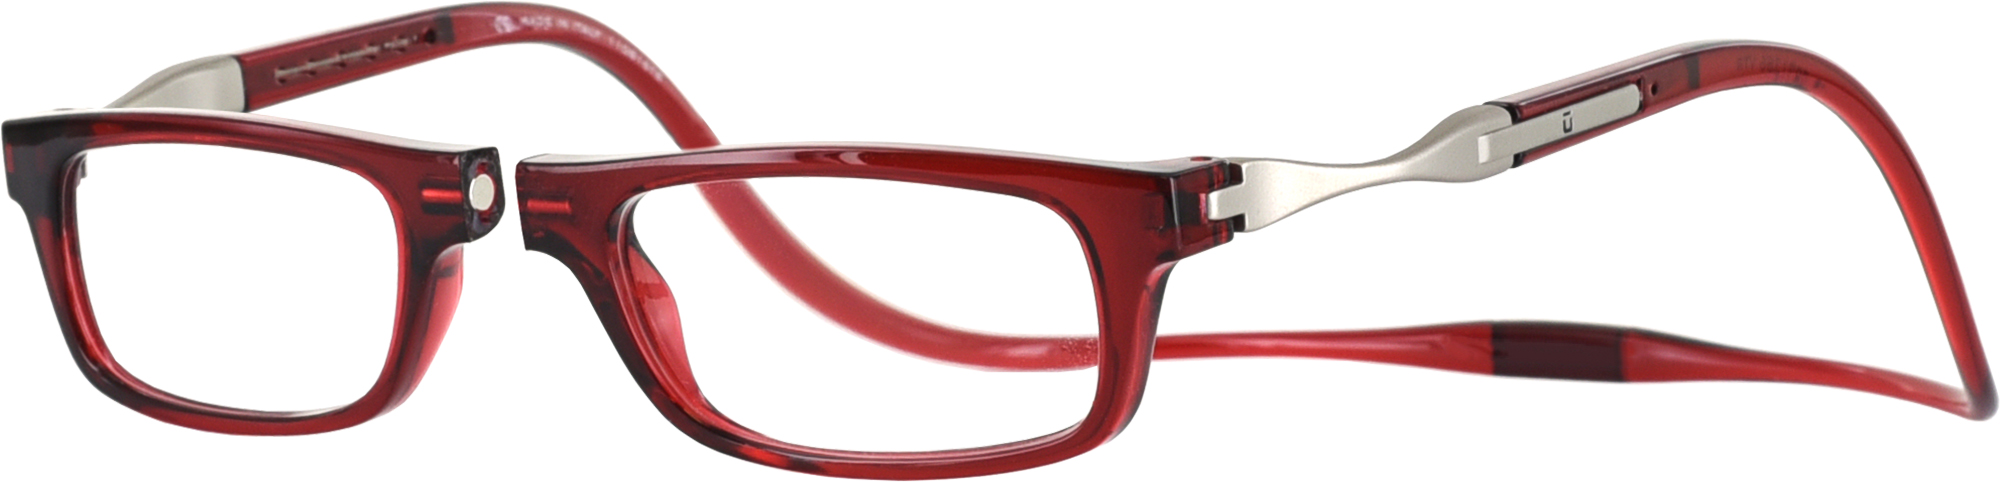 vunetic by clic single vision half frame readingglasses